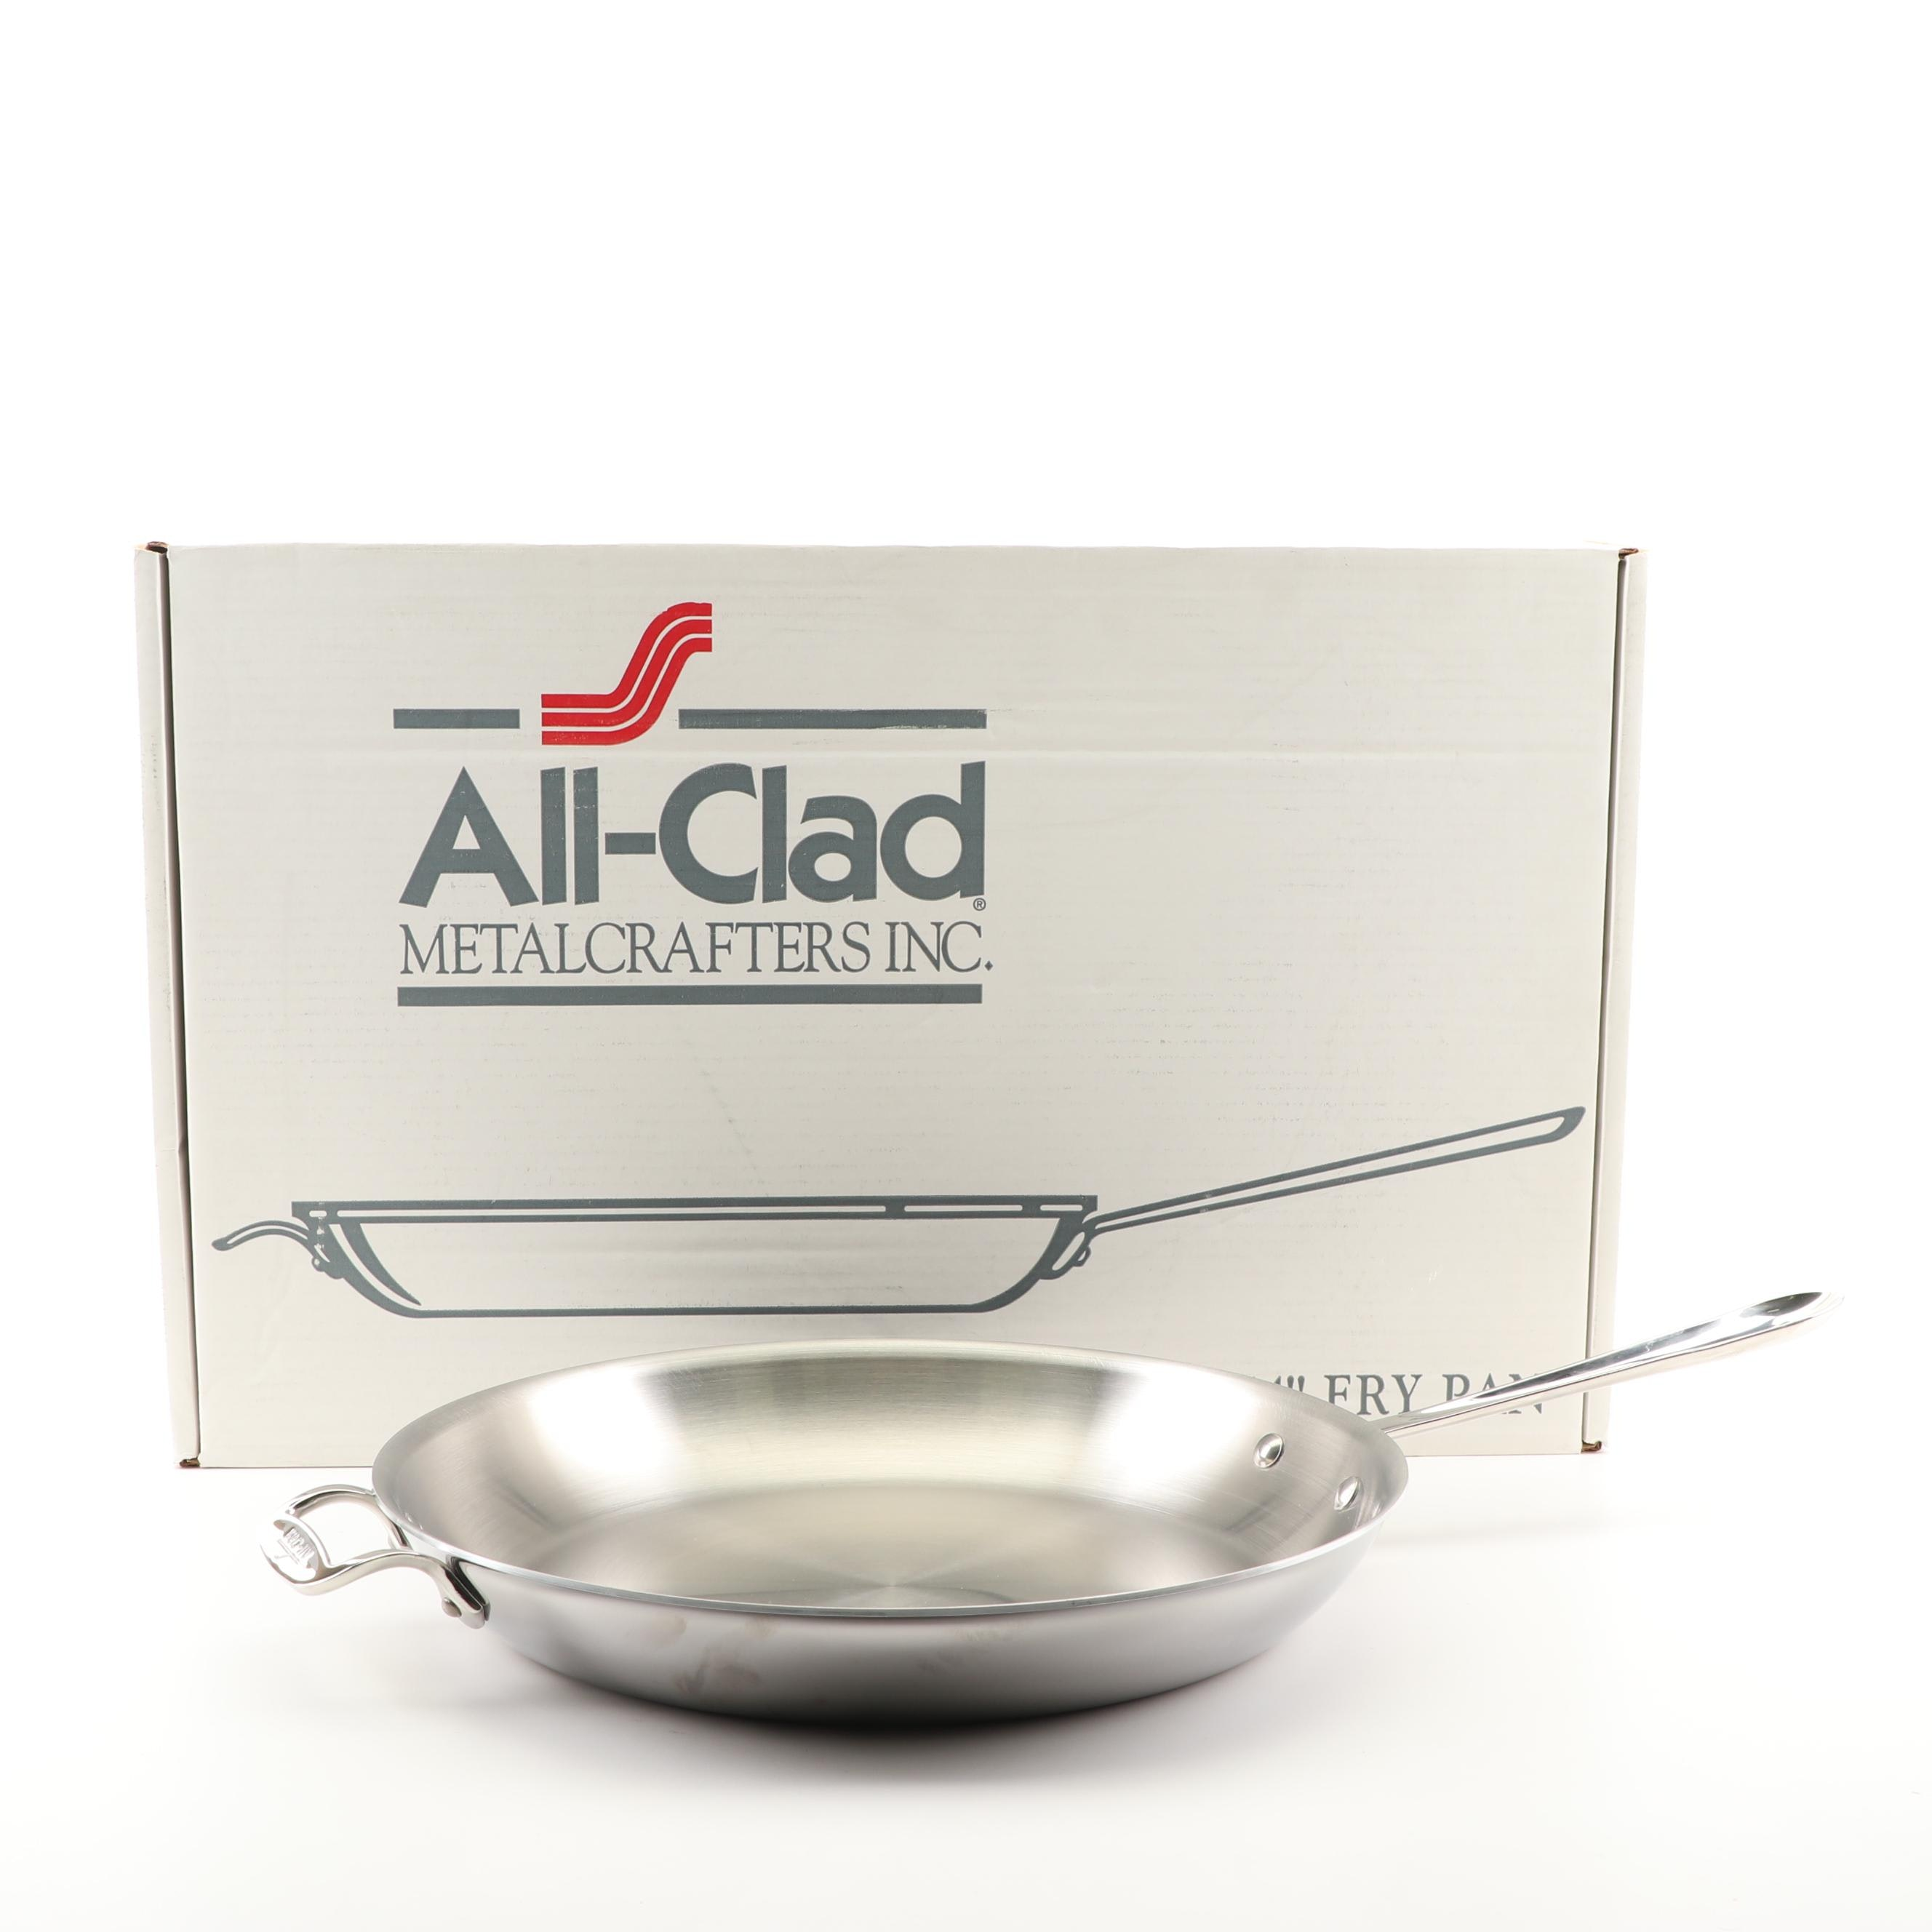 All-Clad Stainless Steel Frying Pan